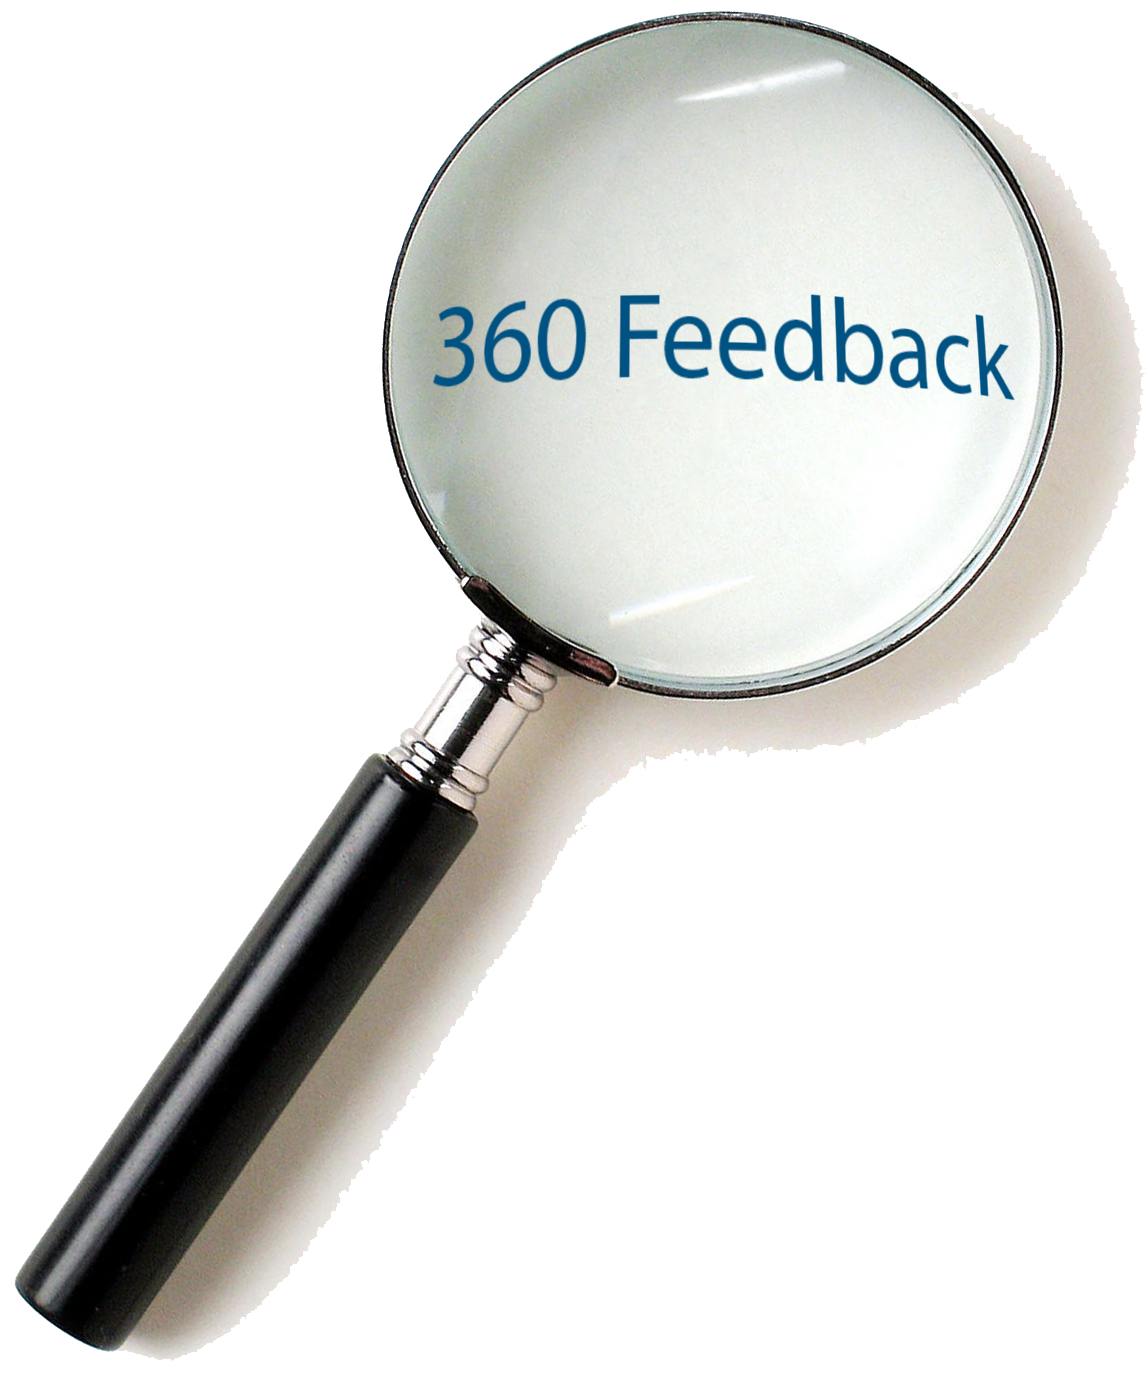 360 Degree Feedback Assessment. Once Upon Time In The West Msn Online Program. Health Information Technology Courses. Best Home Mortgage Refinance Rates. Granite Countertops St Louis Mo. Chicago Real Estate Attorneys. First Year College Classes San Diego Divorce. Chicago School Of Music List Of Wlan Channels. Associated General Contractors Of Texas